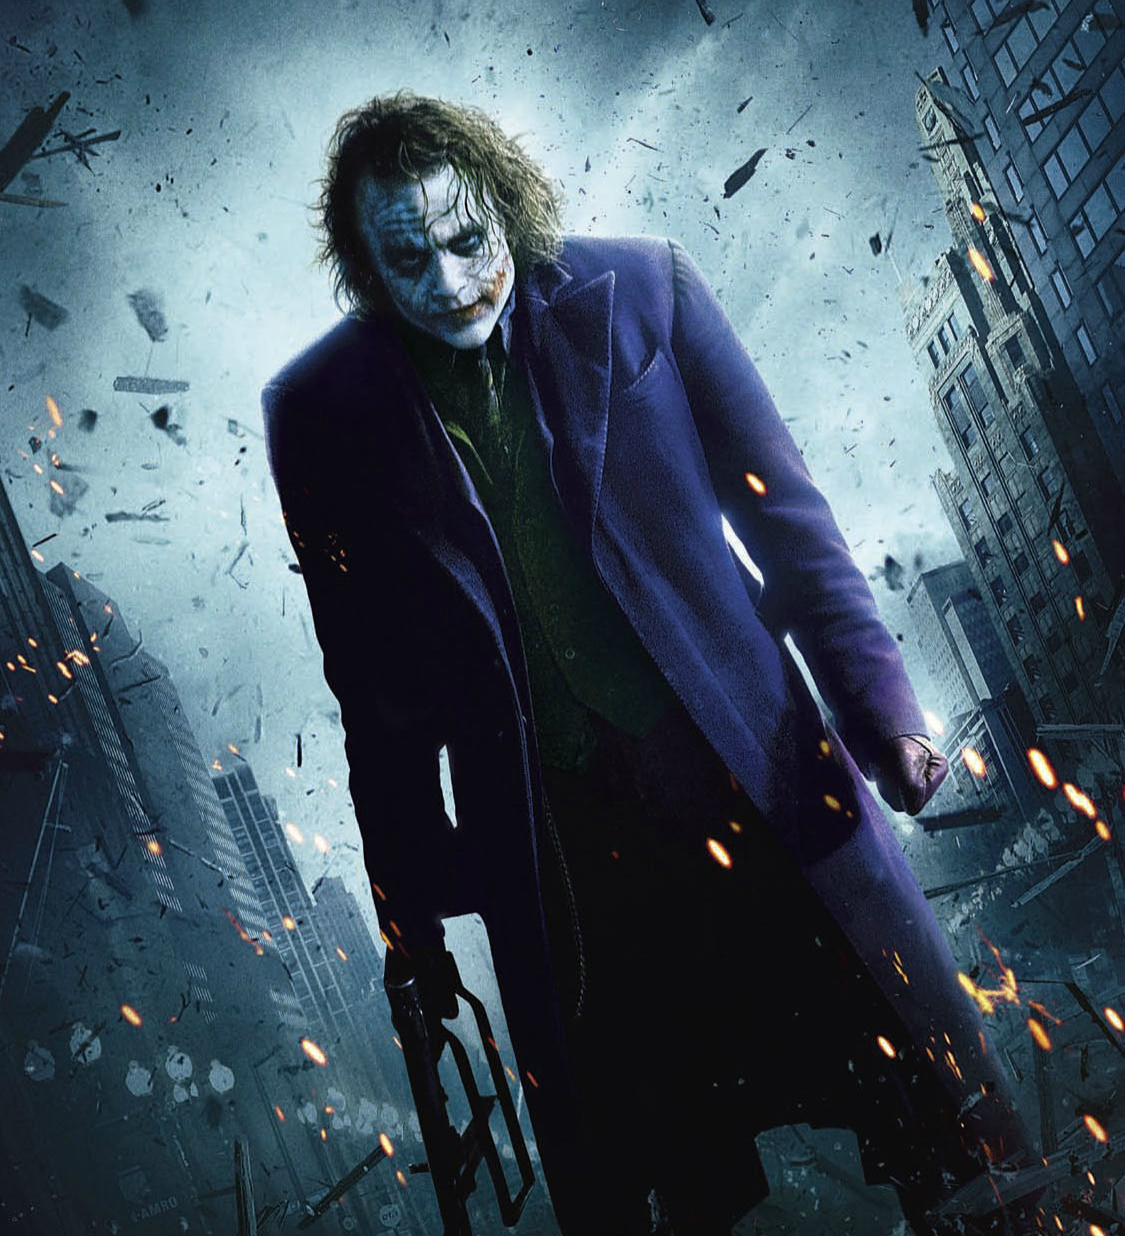 Florida man dubbed the 'Joker' arrested two times in week | Daily ...